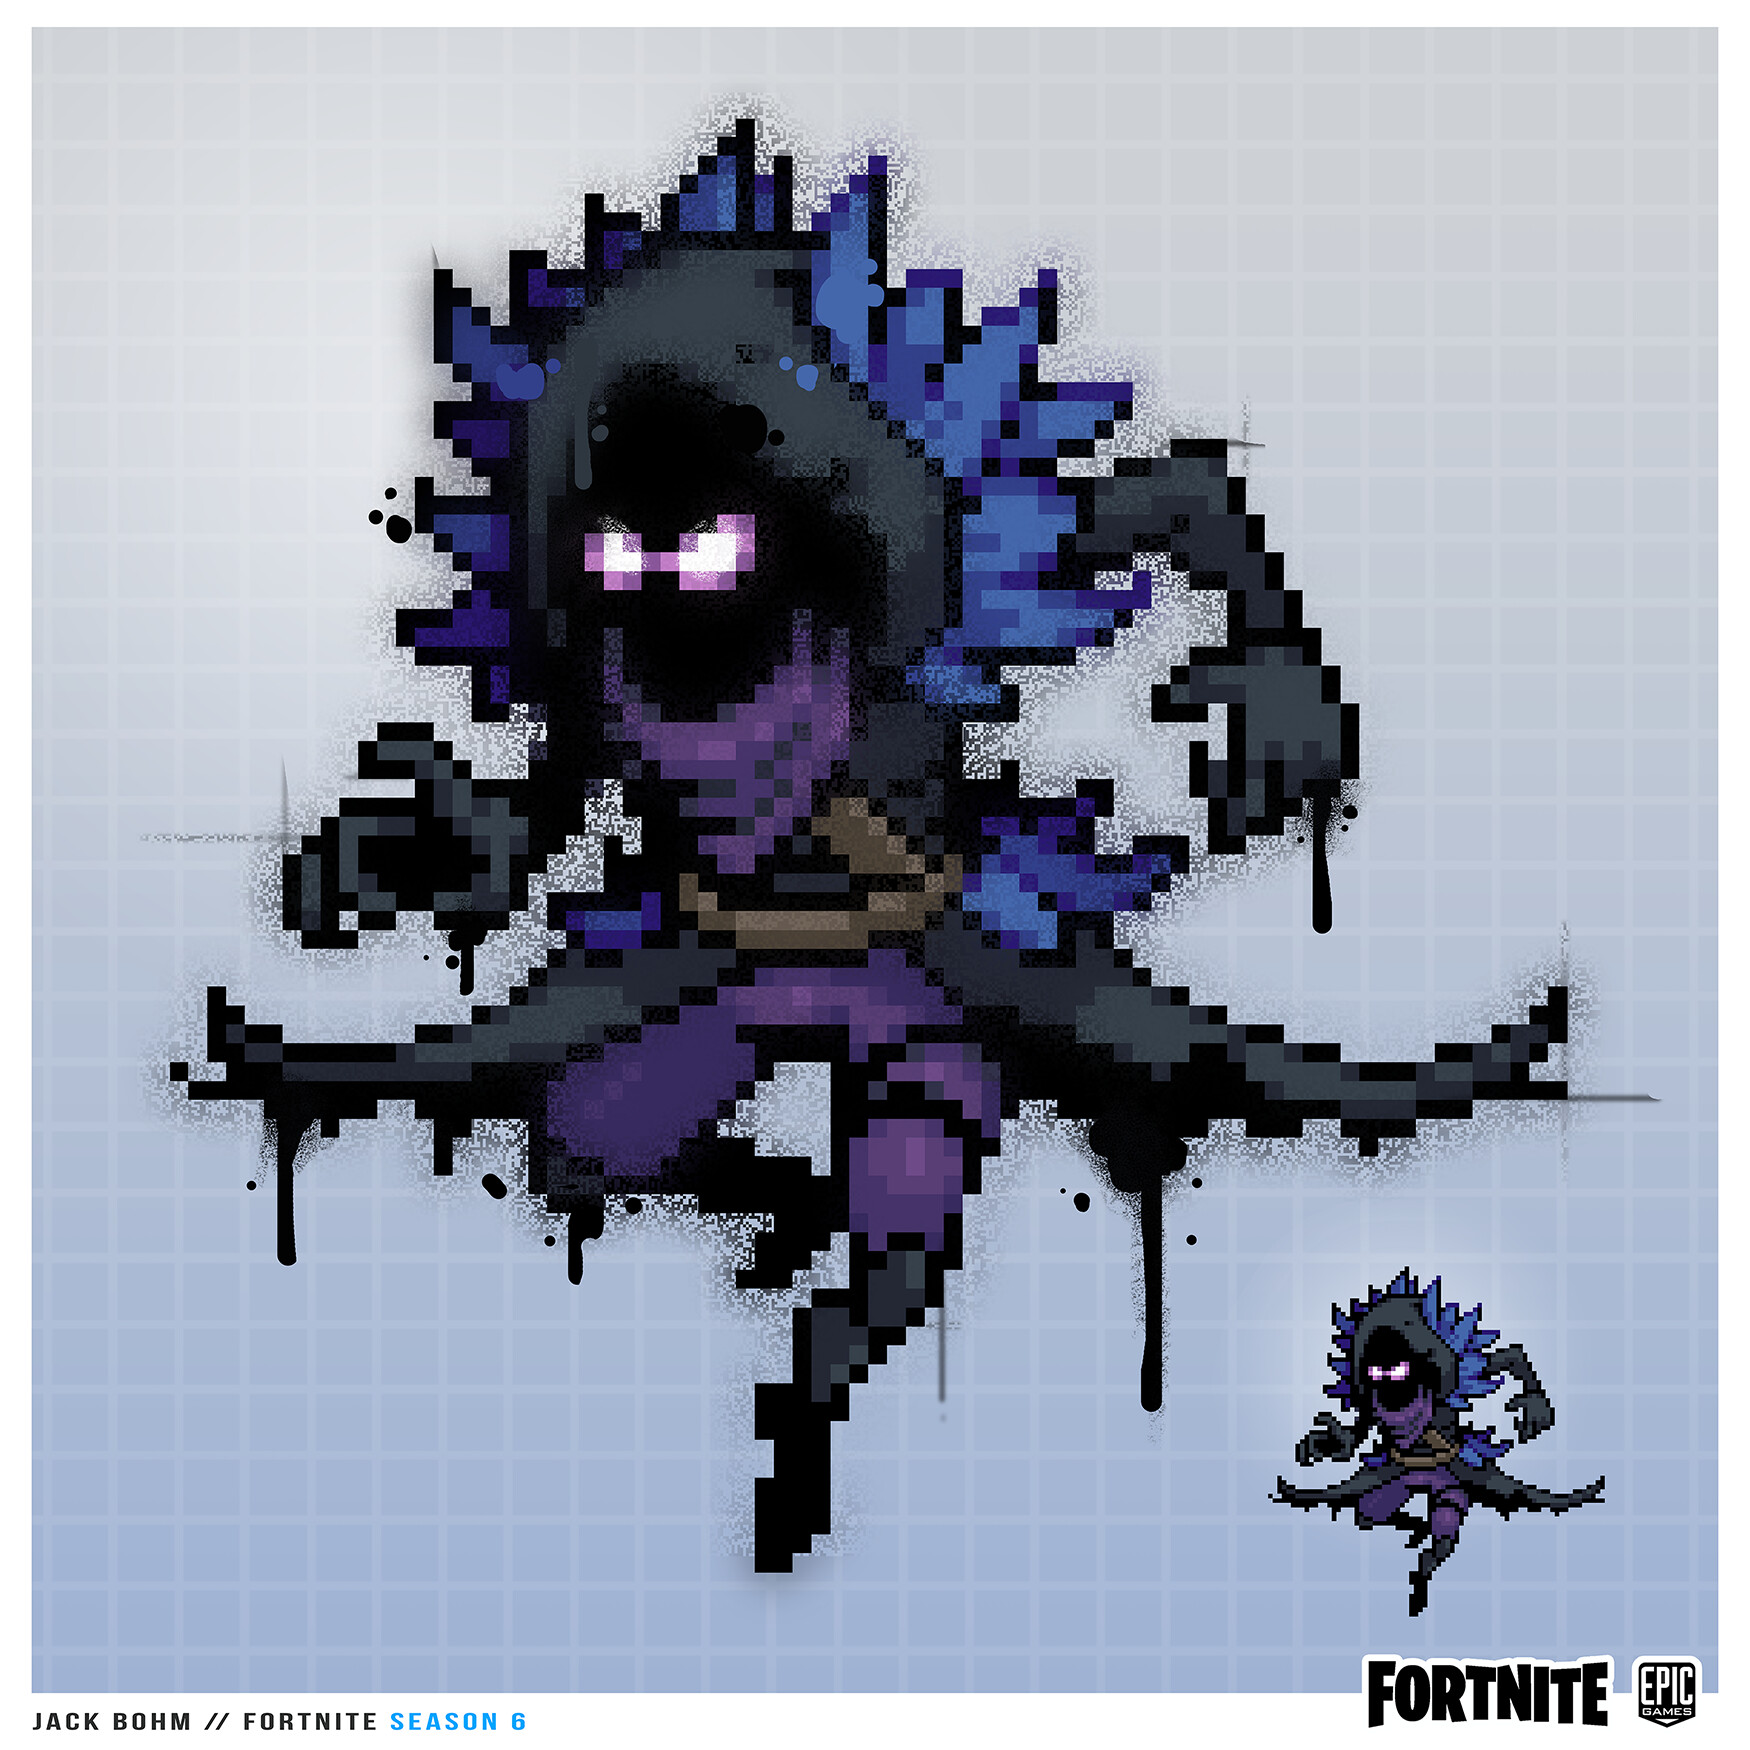 Dessin Pixel Art Fortnite Lama How To Hack Fortnite